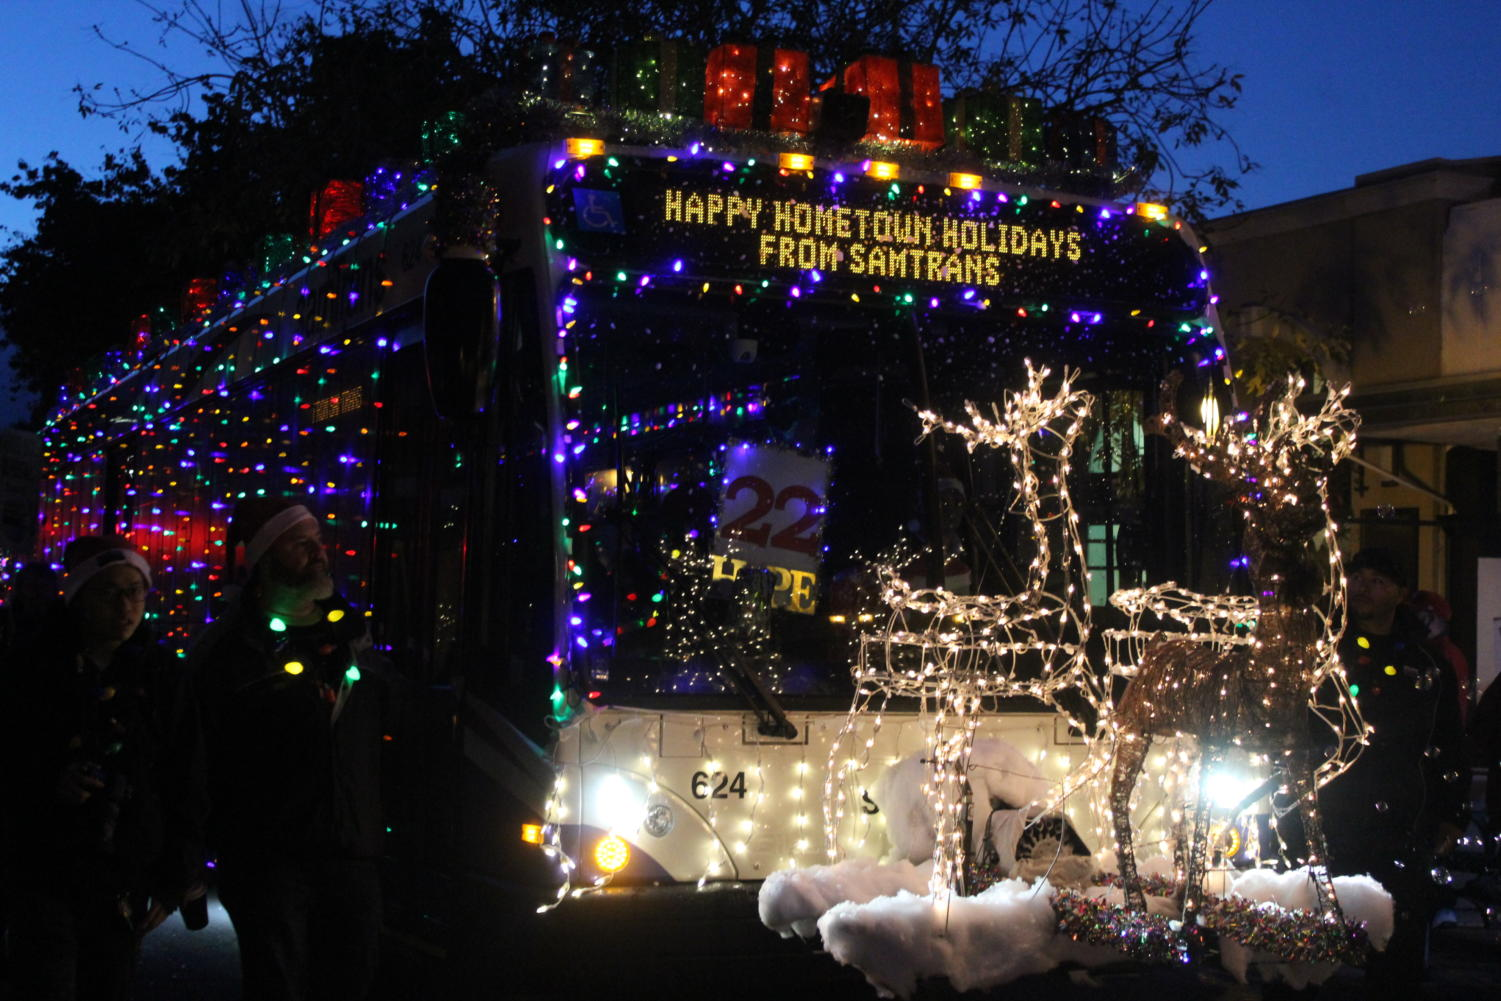 In the Hometown Holidays festival, a SamTrans bus with Christmas lights drives through the parade. Hometown Holidays is held annually on the first Saturday in December.